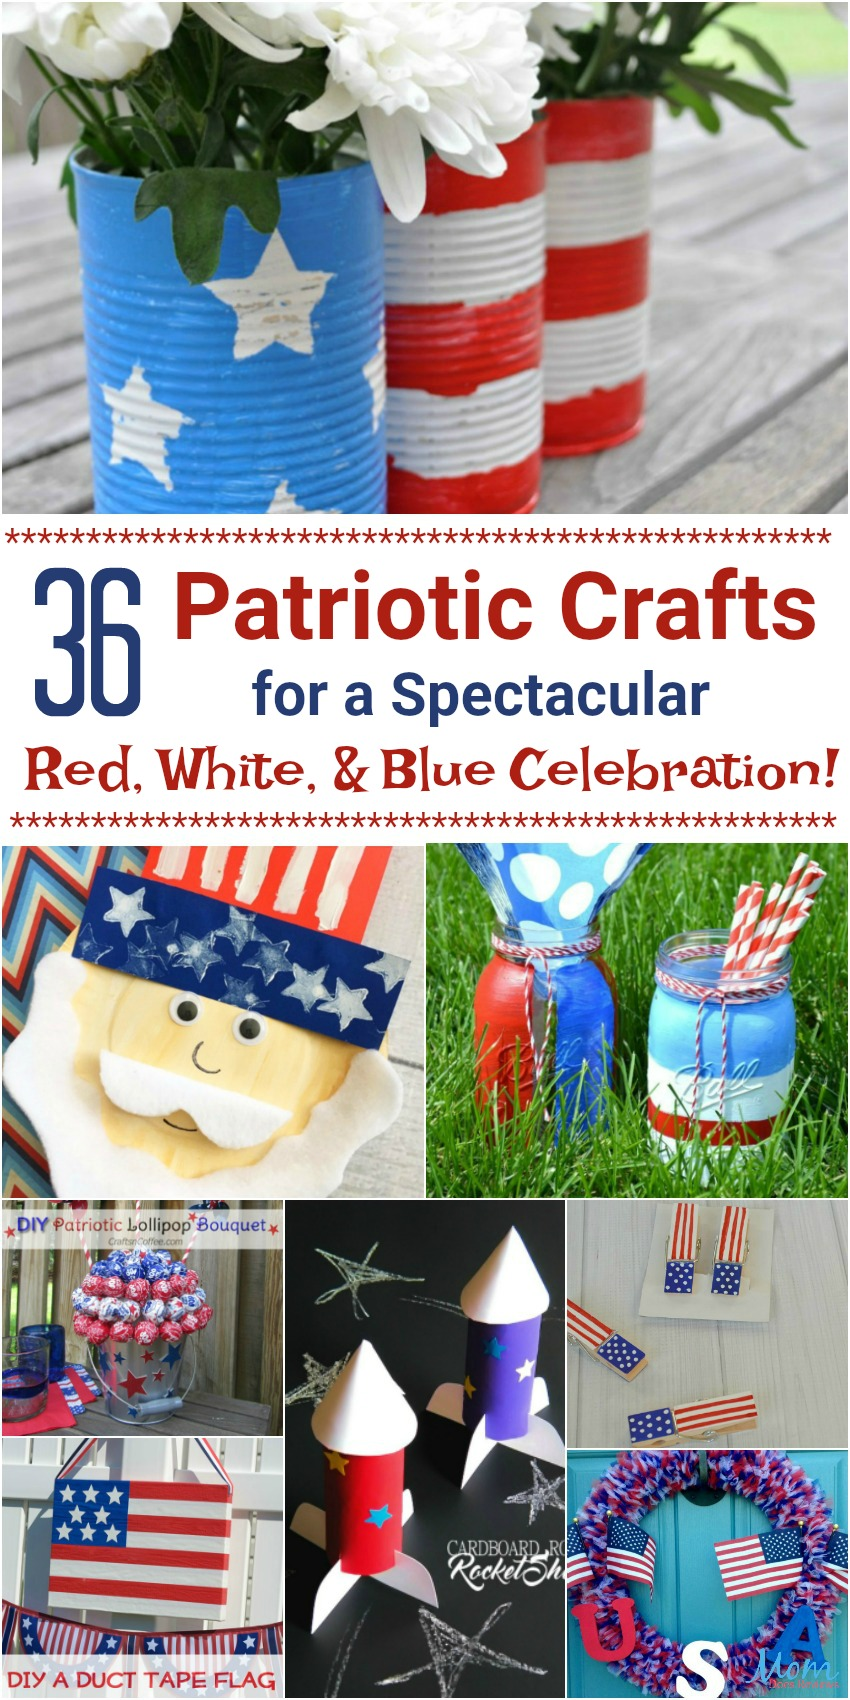 36 Patriotic Crafts for a Spectacular Red, White and Blue Celebration